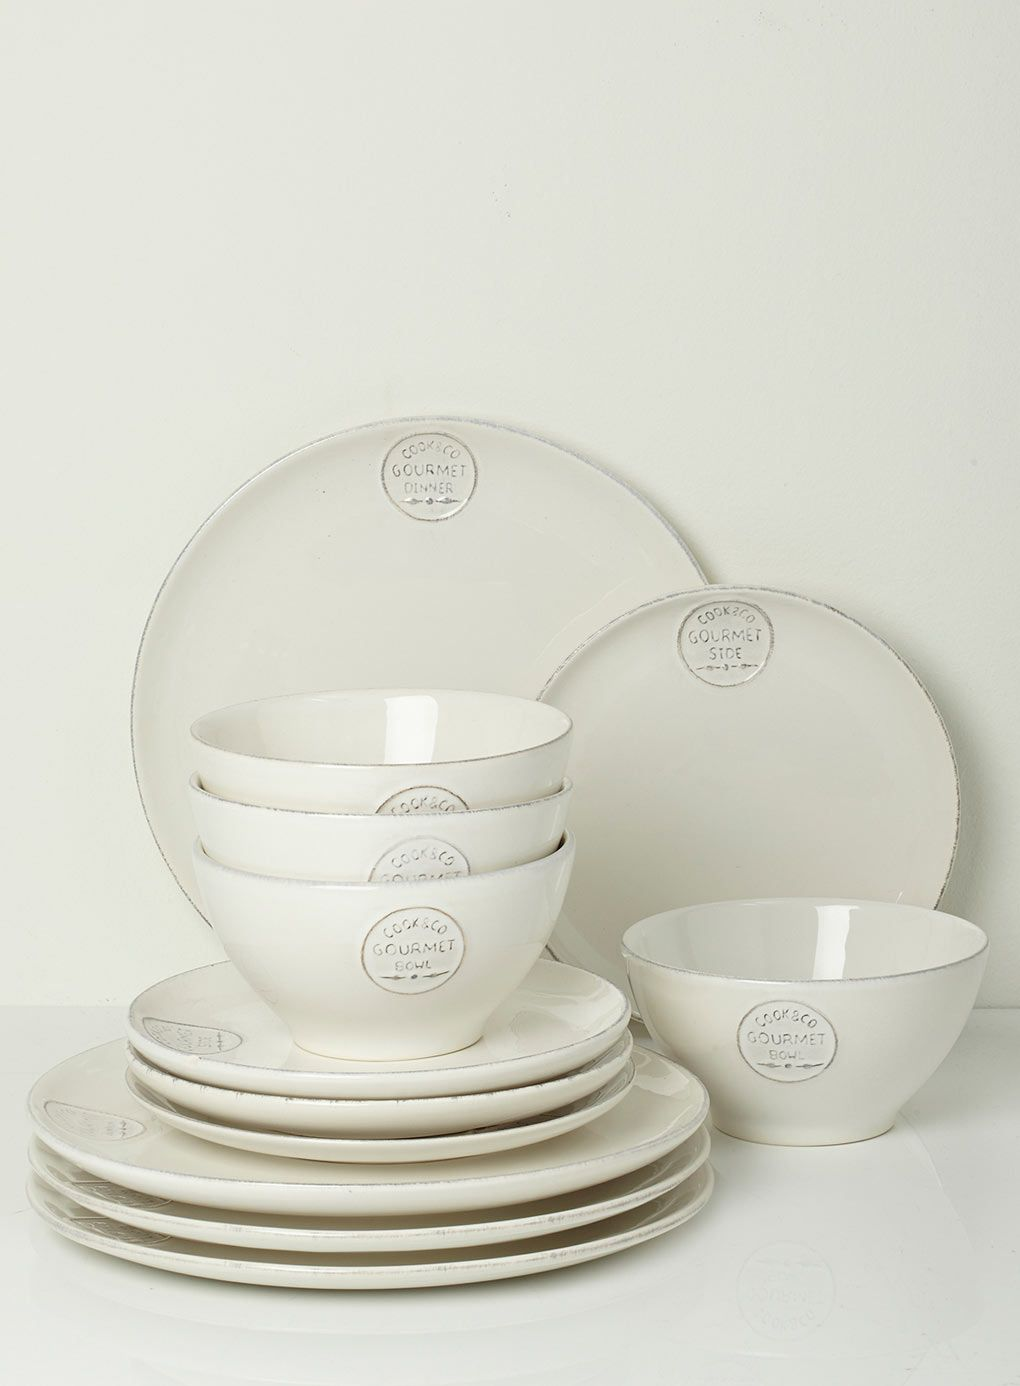 Cook u0026 Co Gourmet 12 Piece Dinner Set - BHS & Cook u0026 Co Gourmet 12 Piece Dinner Set - BHS | Dinnerware | Pinterest ...